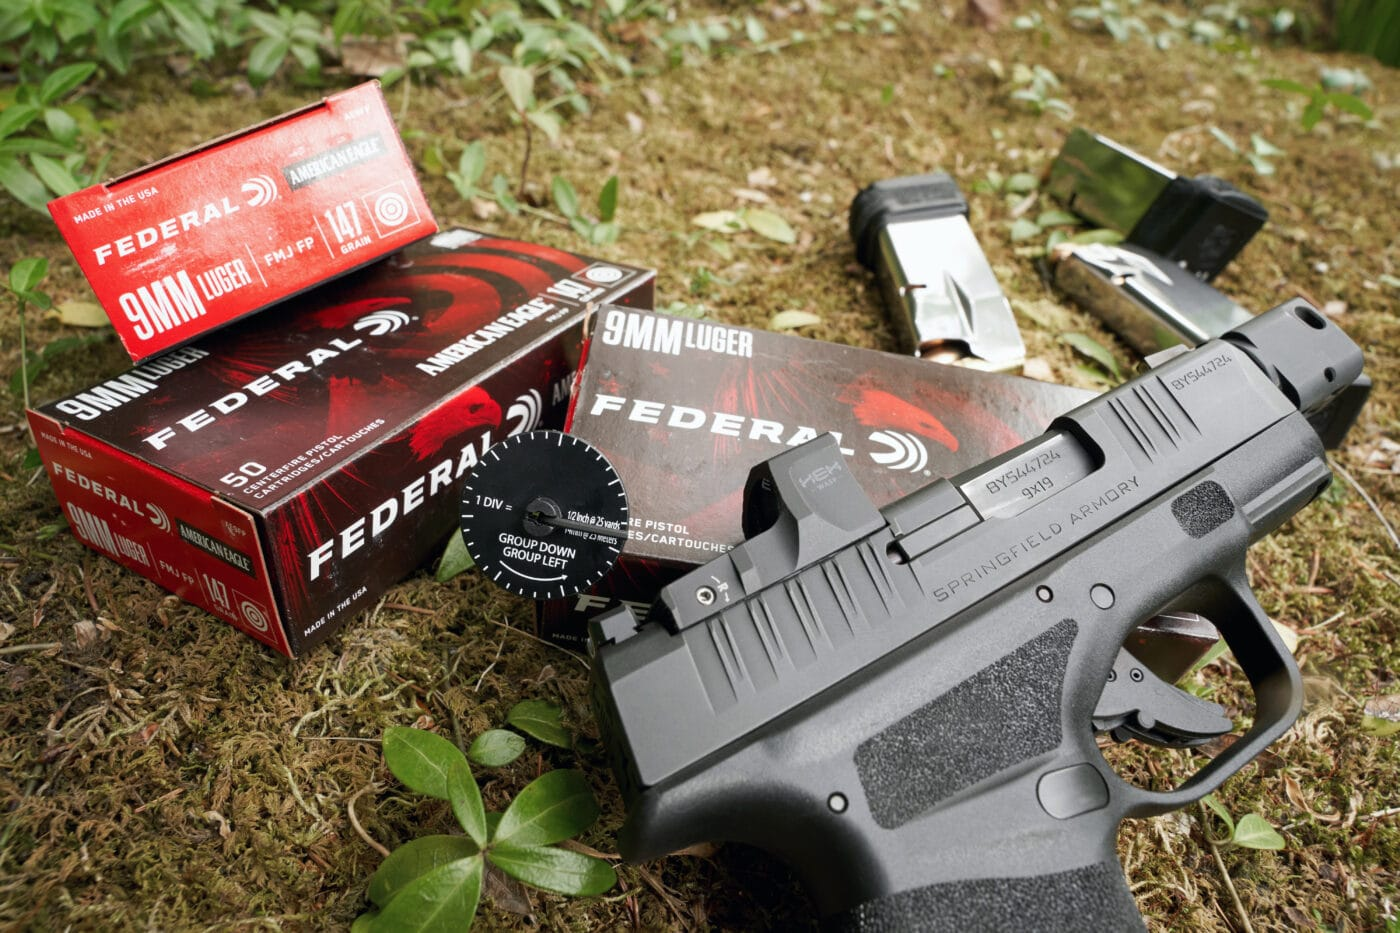 HEX Wasp optic with the Springfield Hellcat RDP and boxes of ammo